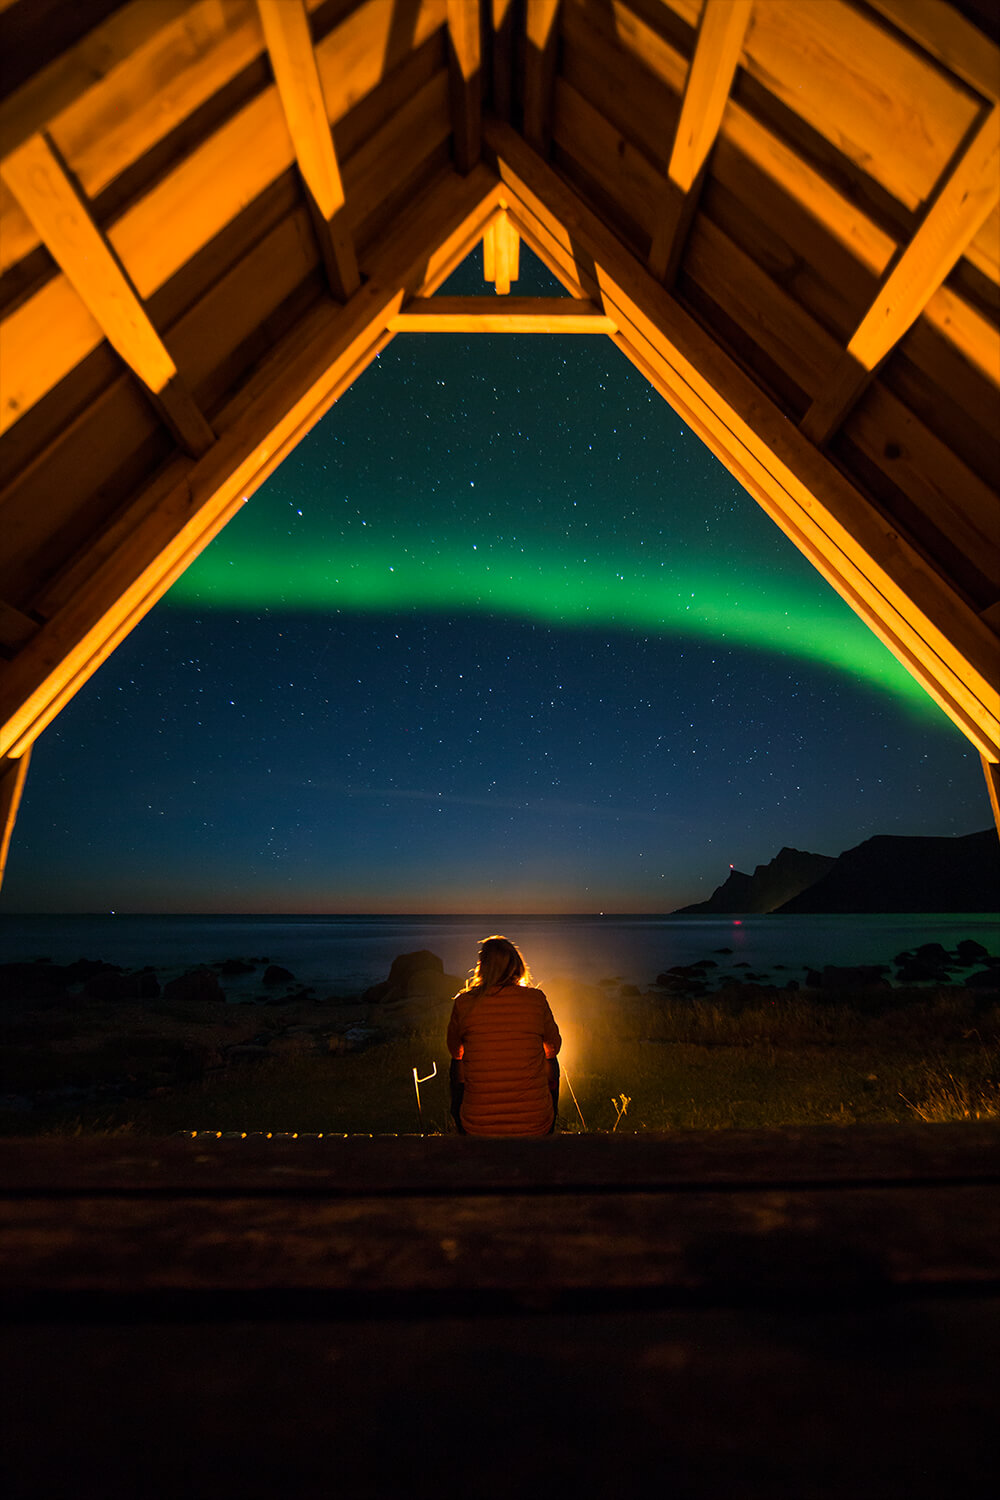 Image of a person under the Northern Lights